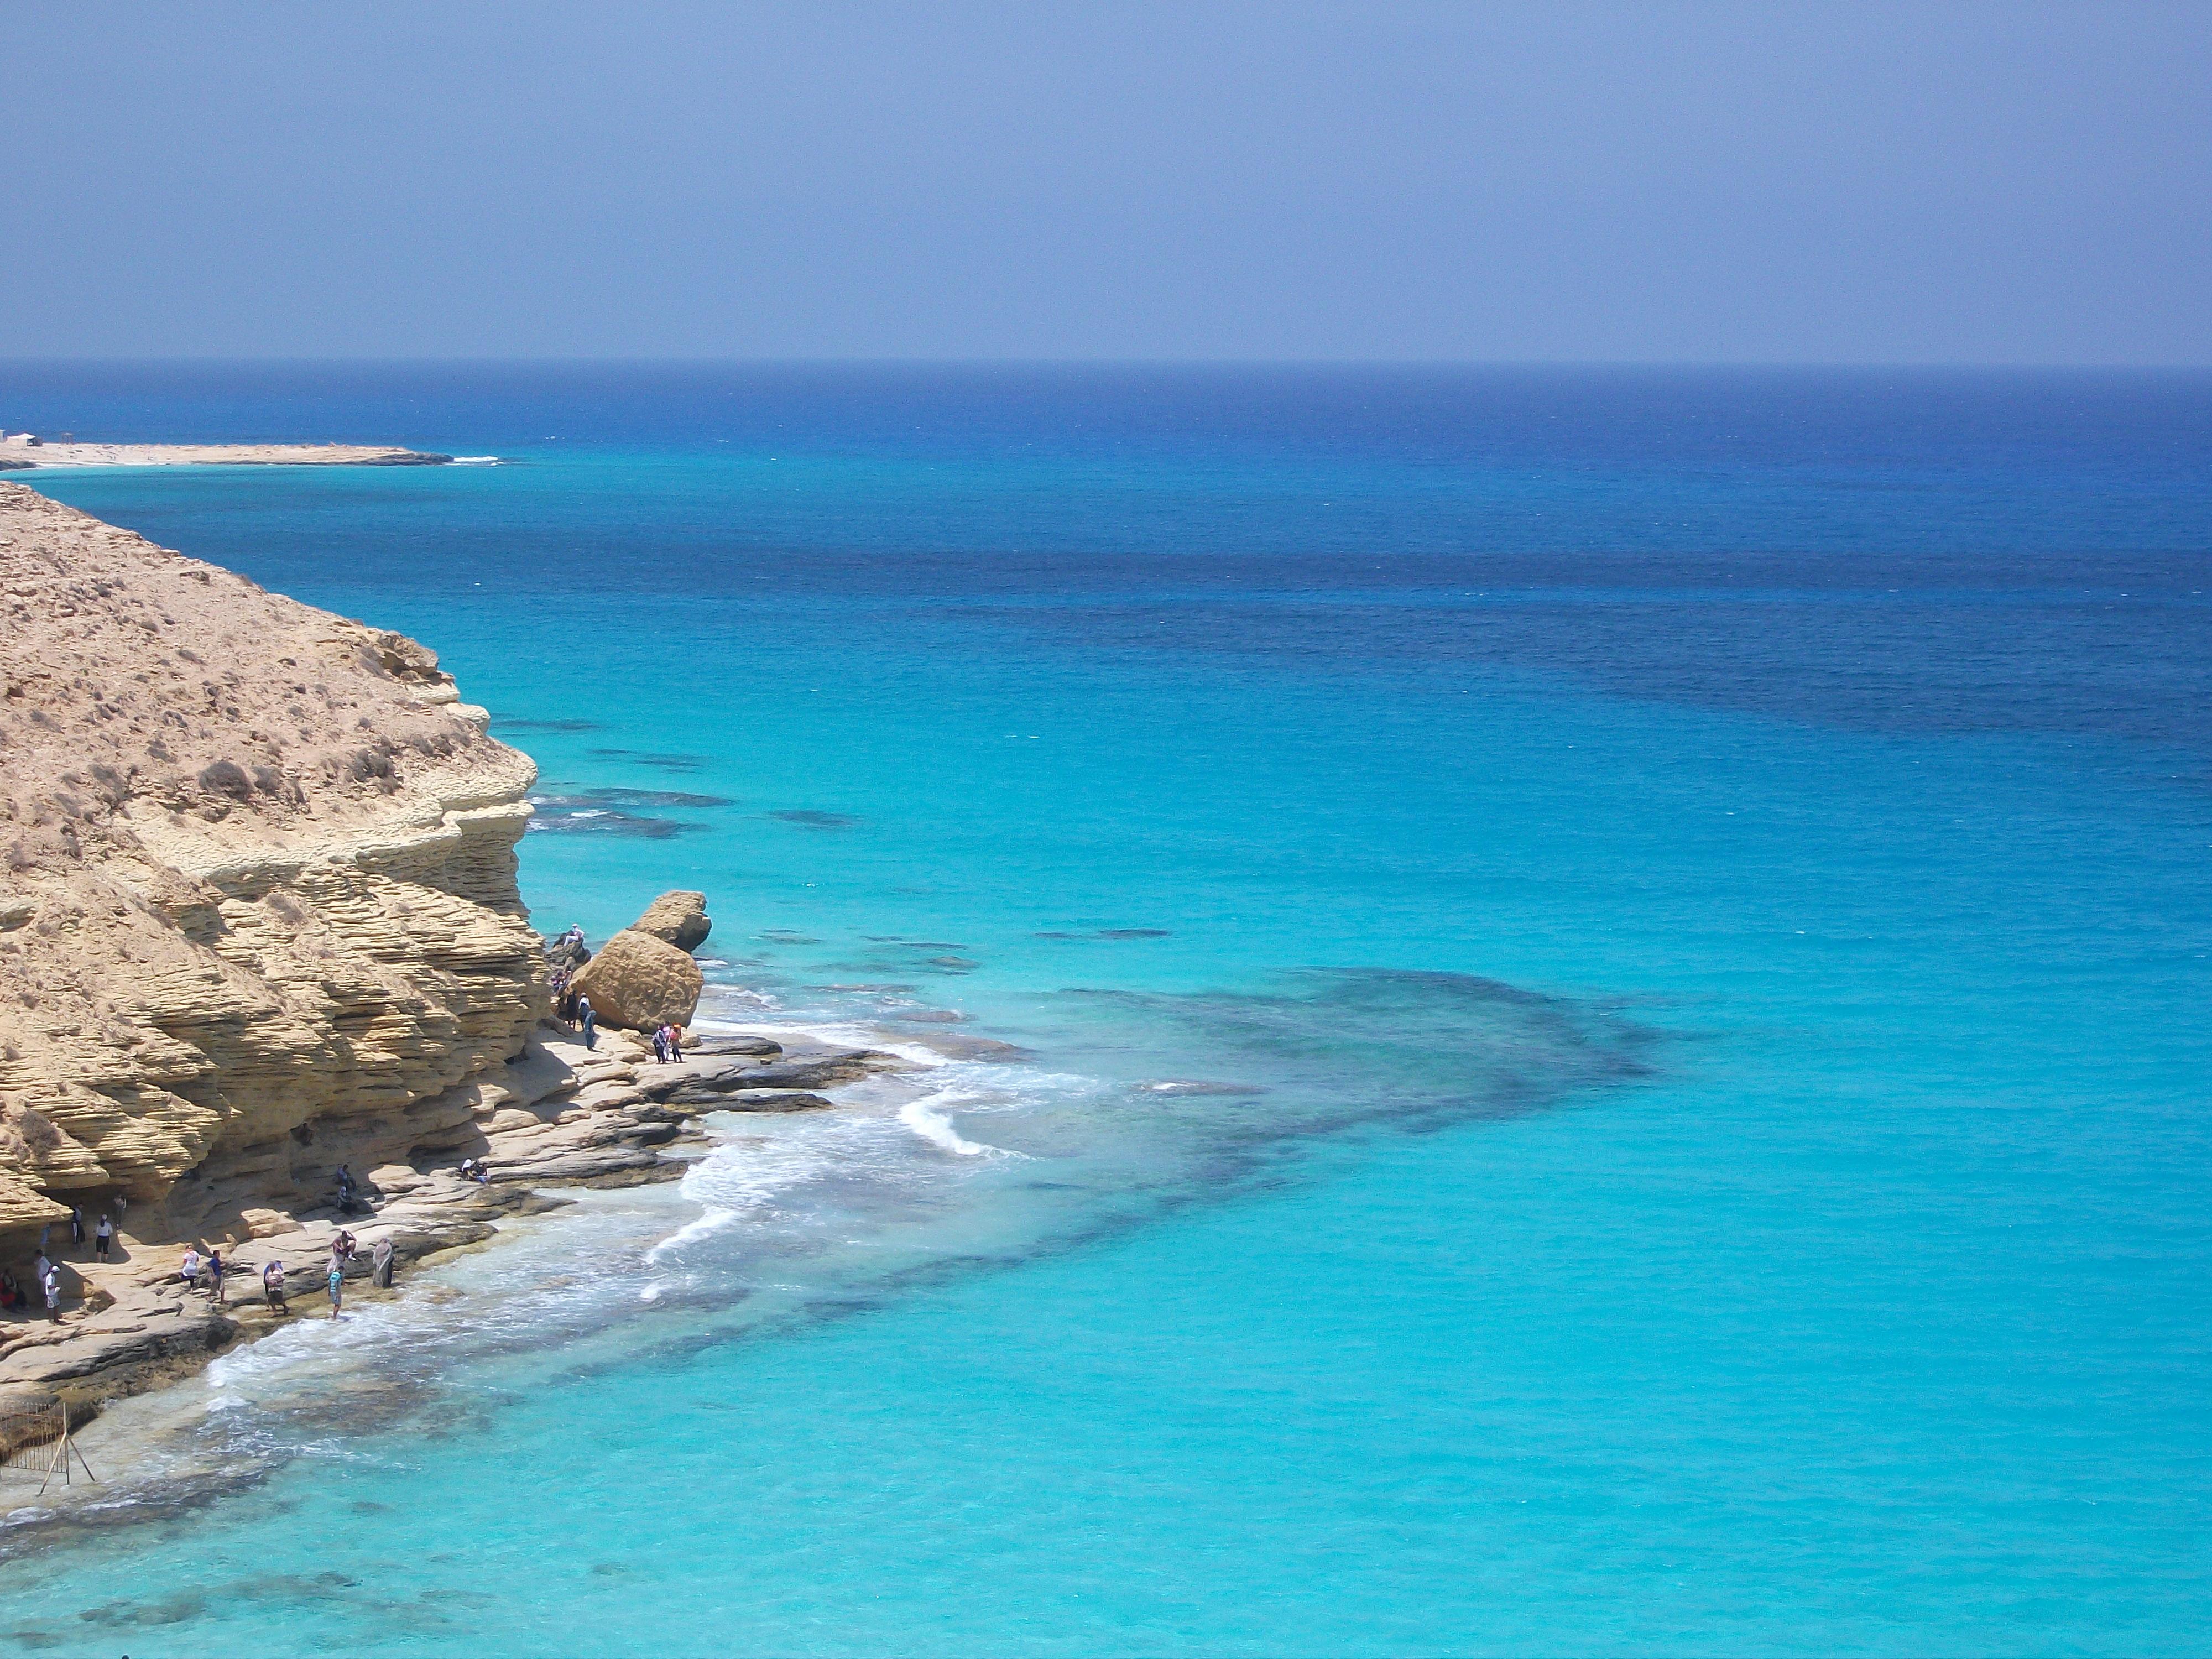 Marsa Matrouh Egypt  City new picture : Marsa Matrouh | Egypt Tourism Authority